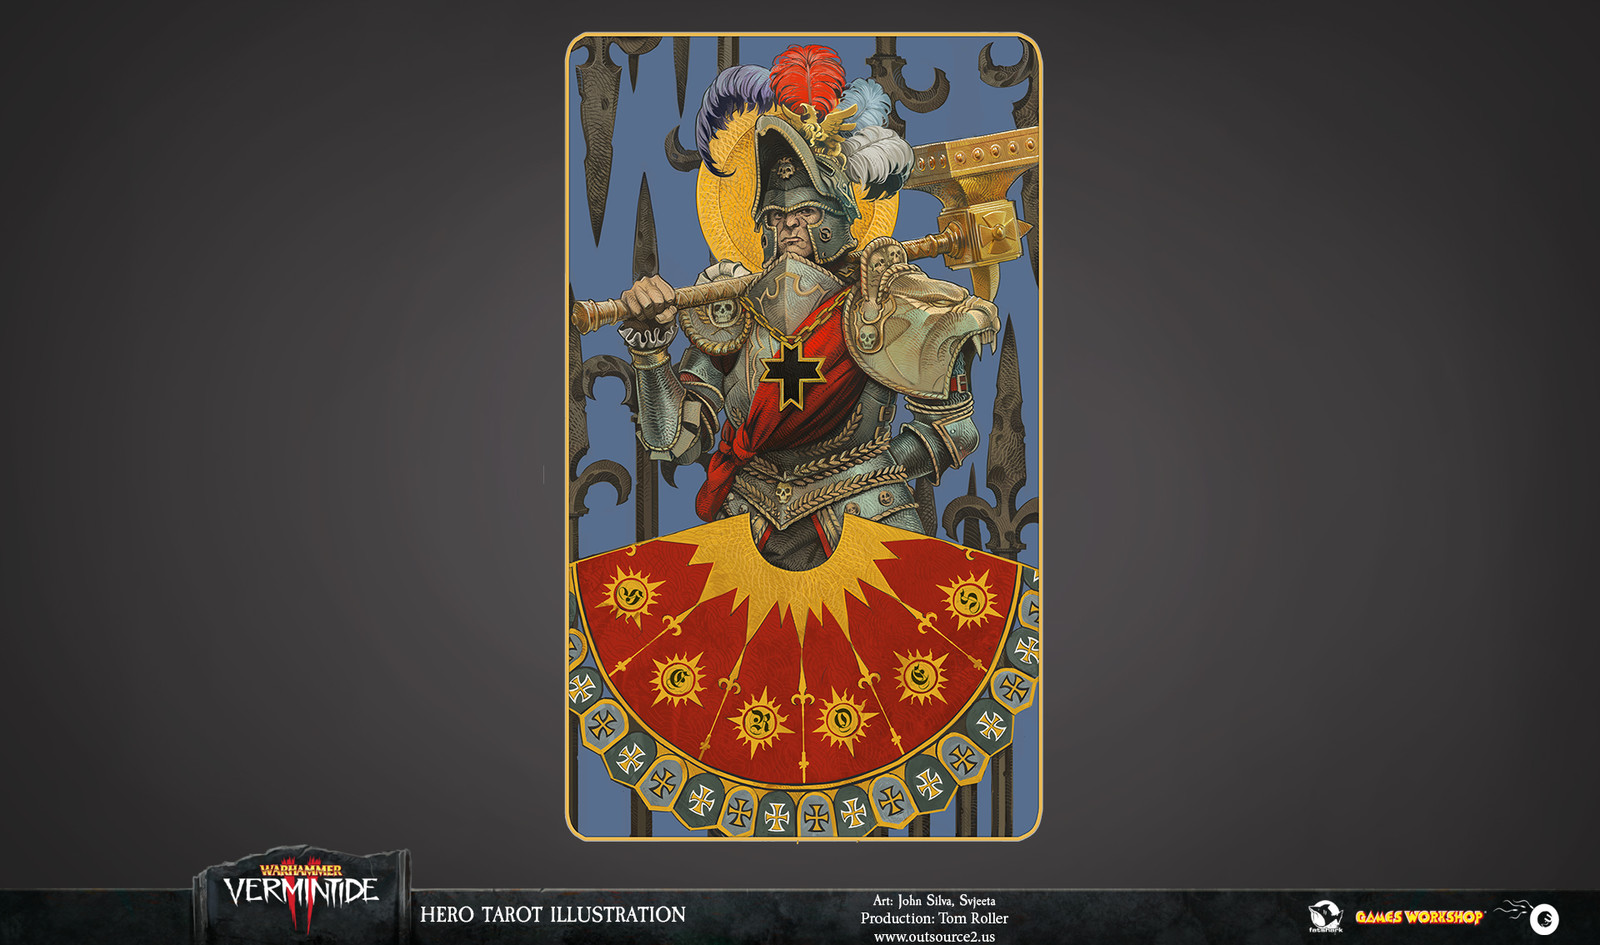 We imagined the Hero card as a piece of medieval propaganda - something the morally dubious Emperor would have issued to promote himself as a force of good.